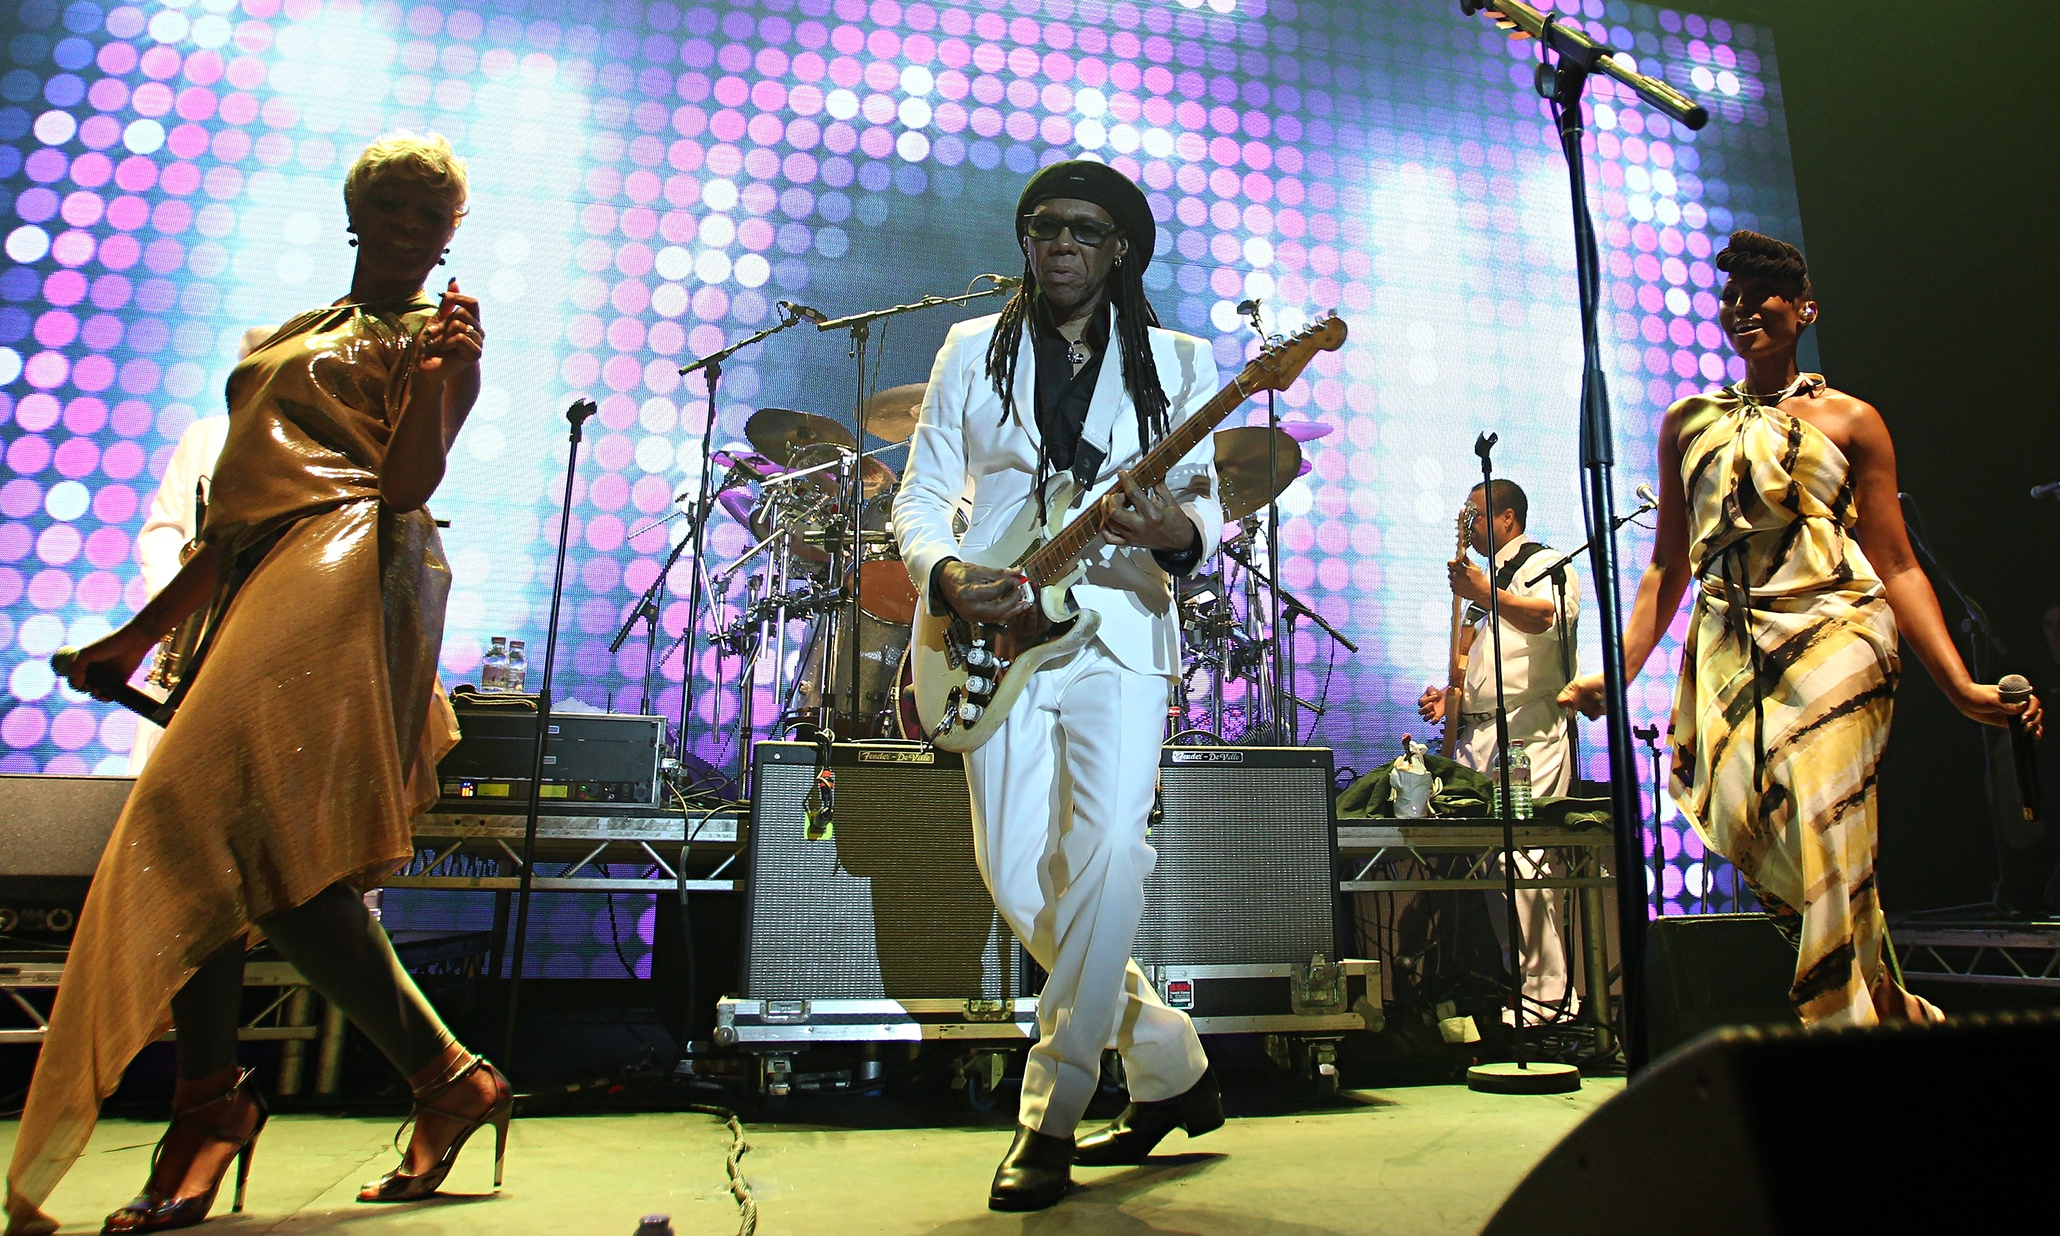 Chic and Nile Rodgers … like being steamrollered by a giant mirrorball.